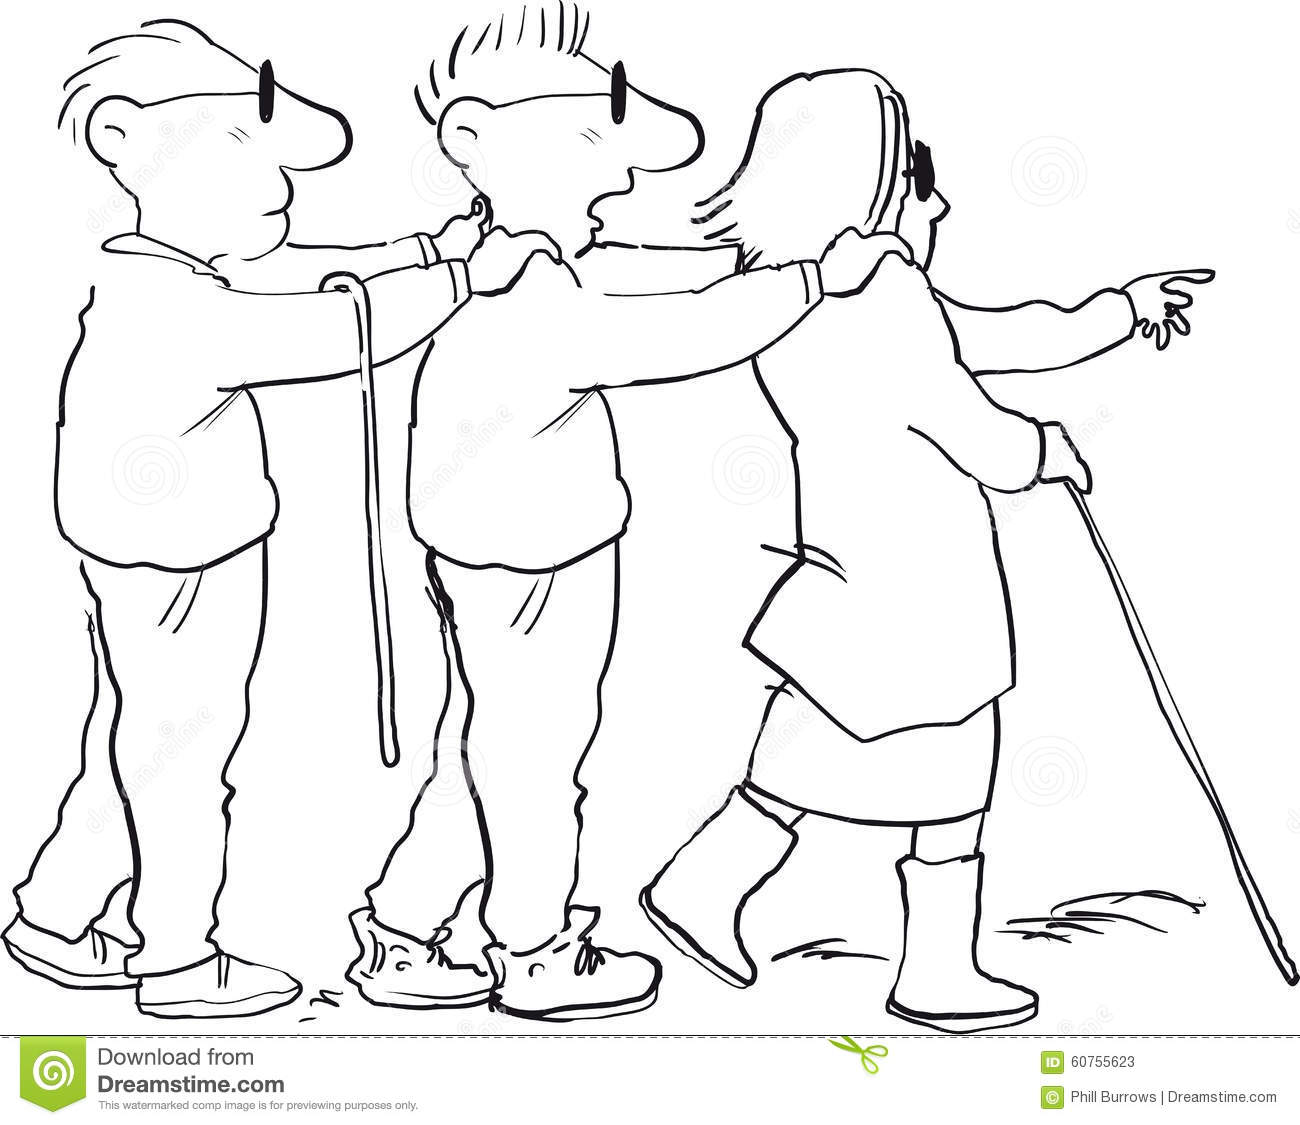 blind-leading-blind-three-people-walking-line-60755623.jpg